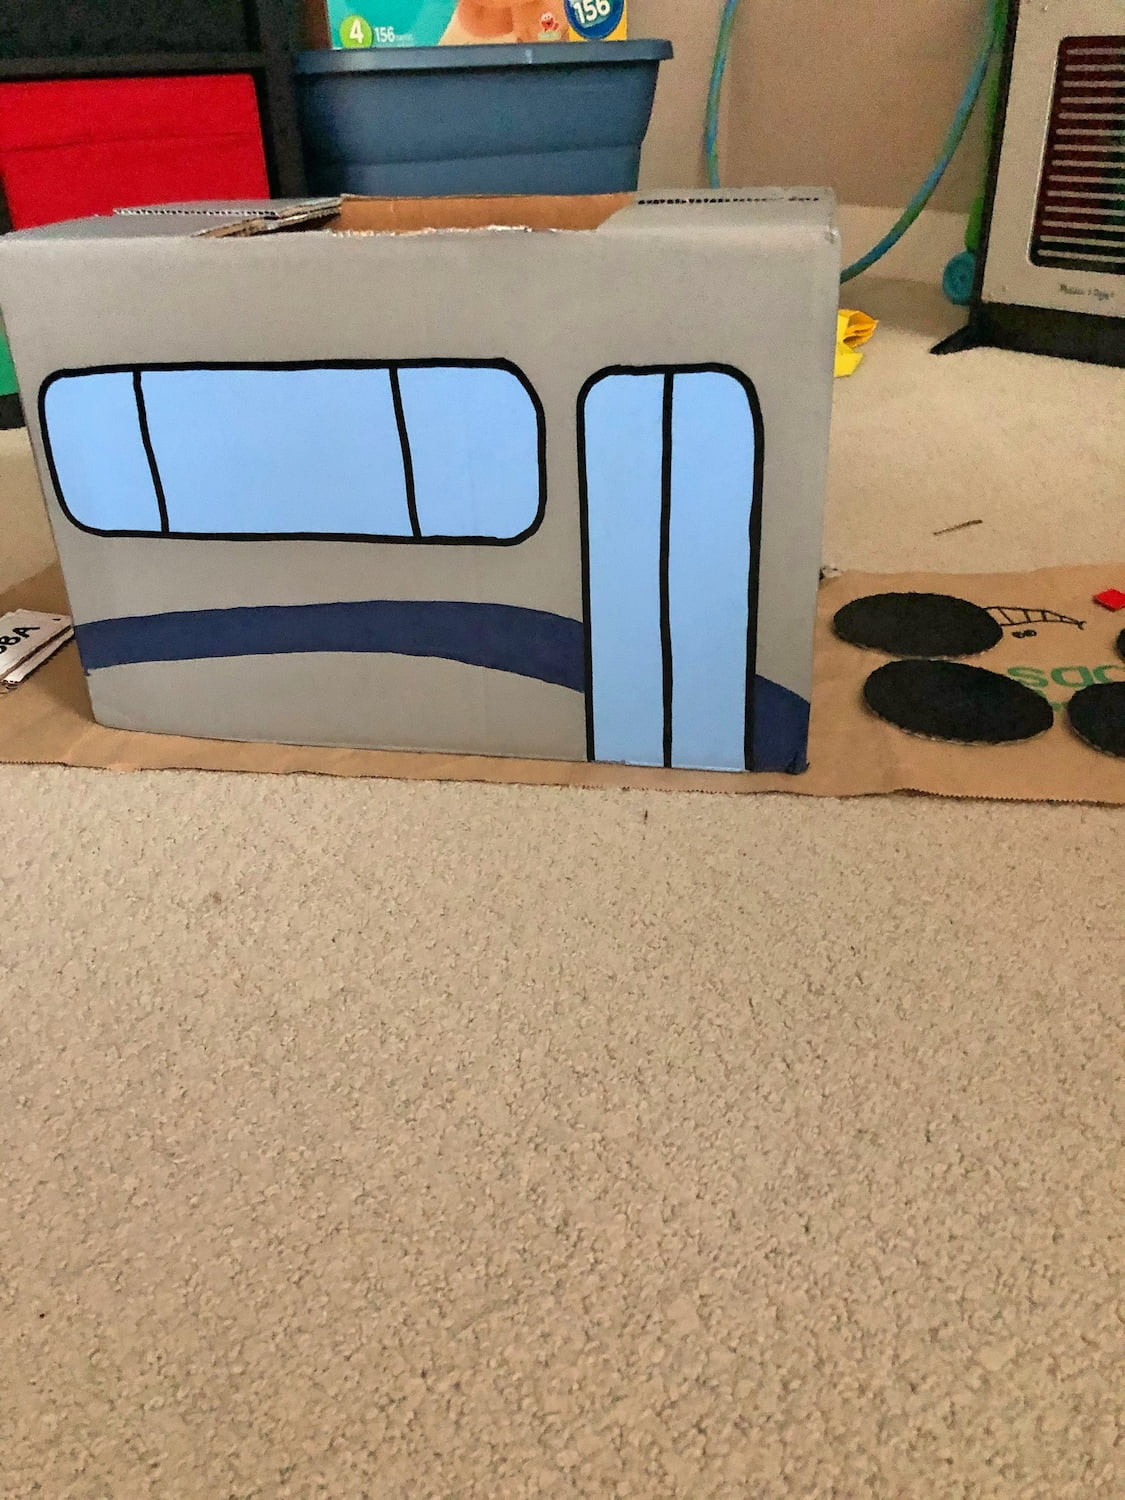 Halloween Costume In Progress - Painting a Bus (2)